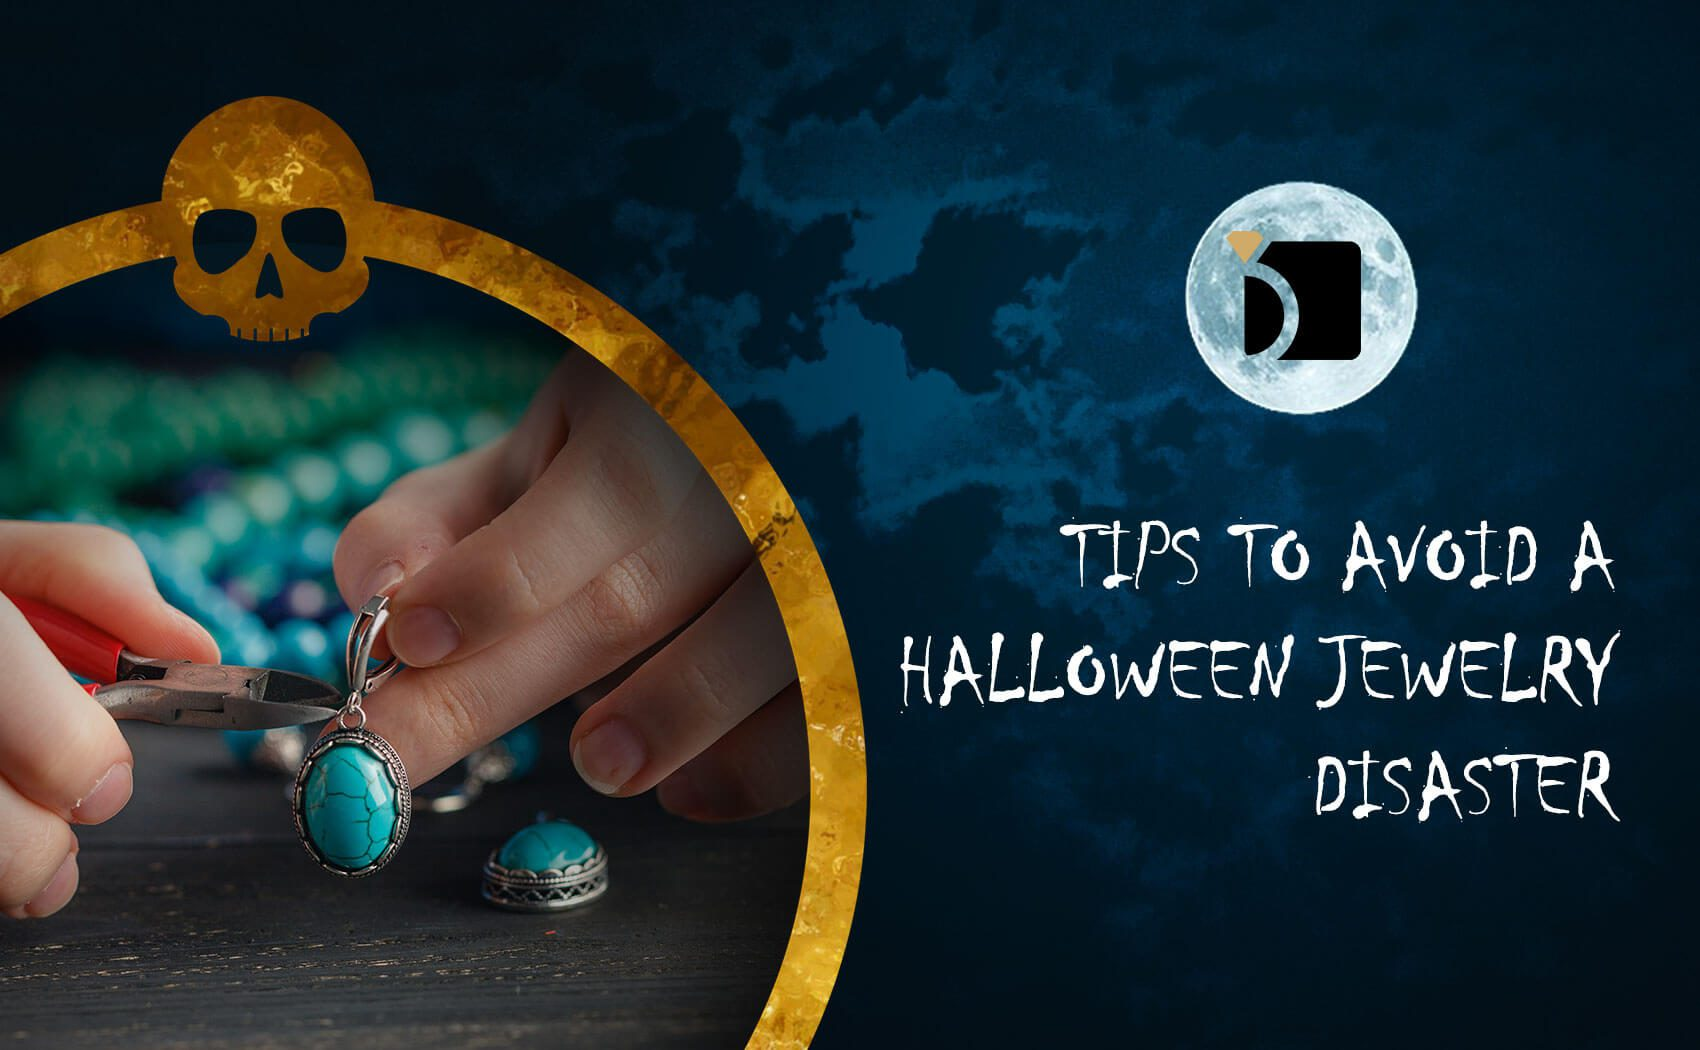 Tips to Avoid a Halloween Jewelry Disaster